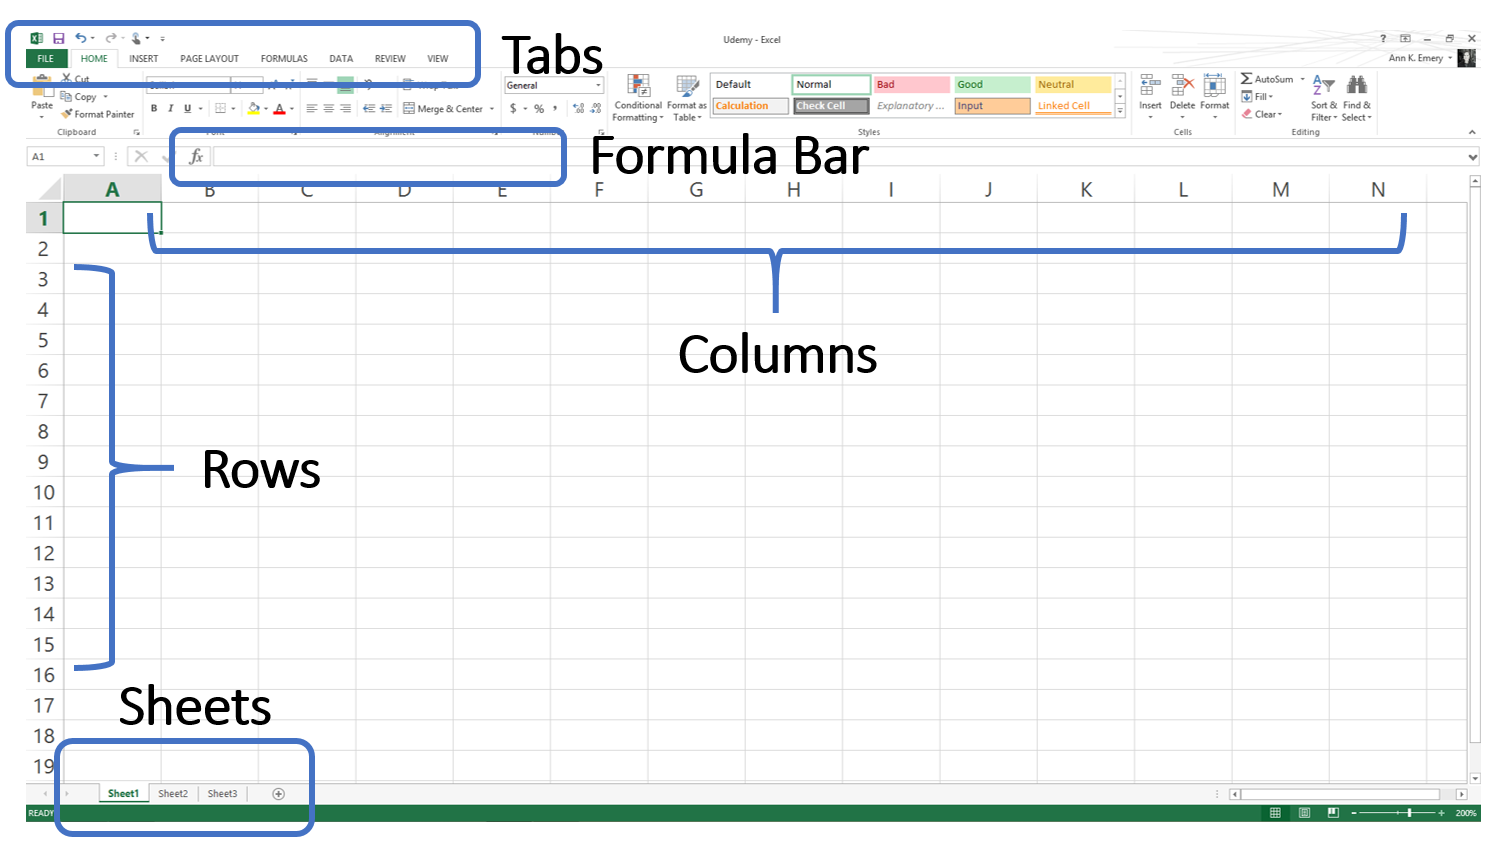 Httpsudemytutorialslearn excel interesting stuff looking for a comprehensive excel tutorial this free gif and text based tutorial will teach you everything from the basics through v lookups and pivot baditri Choice Image